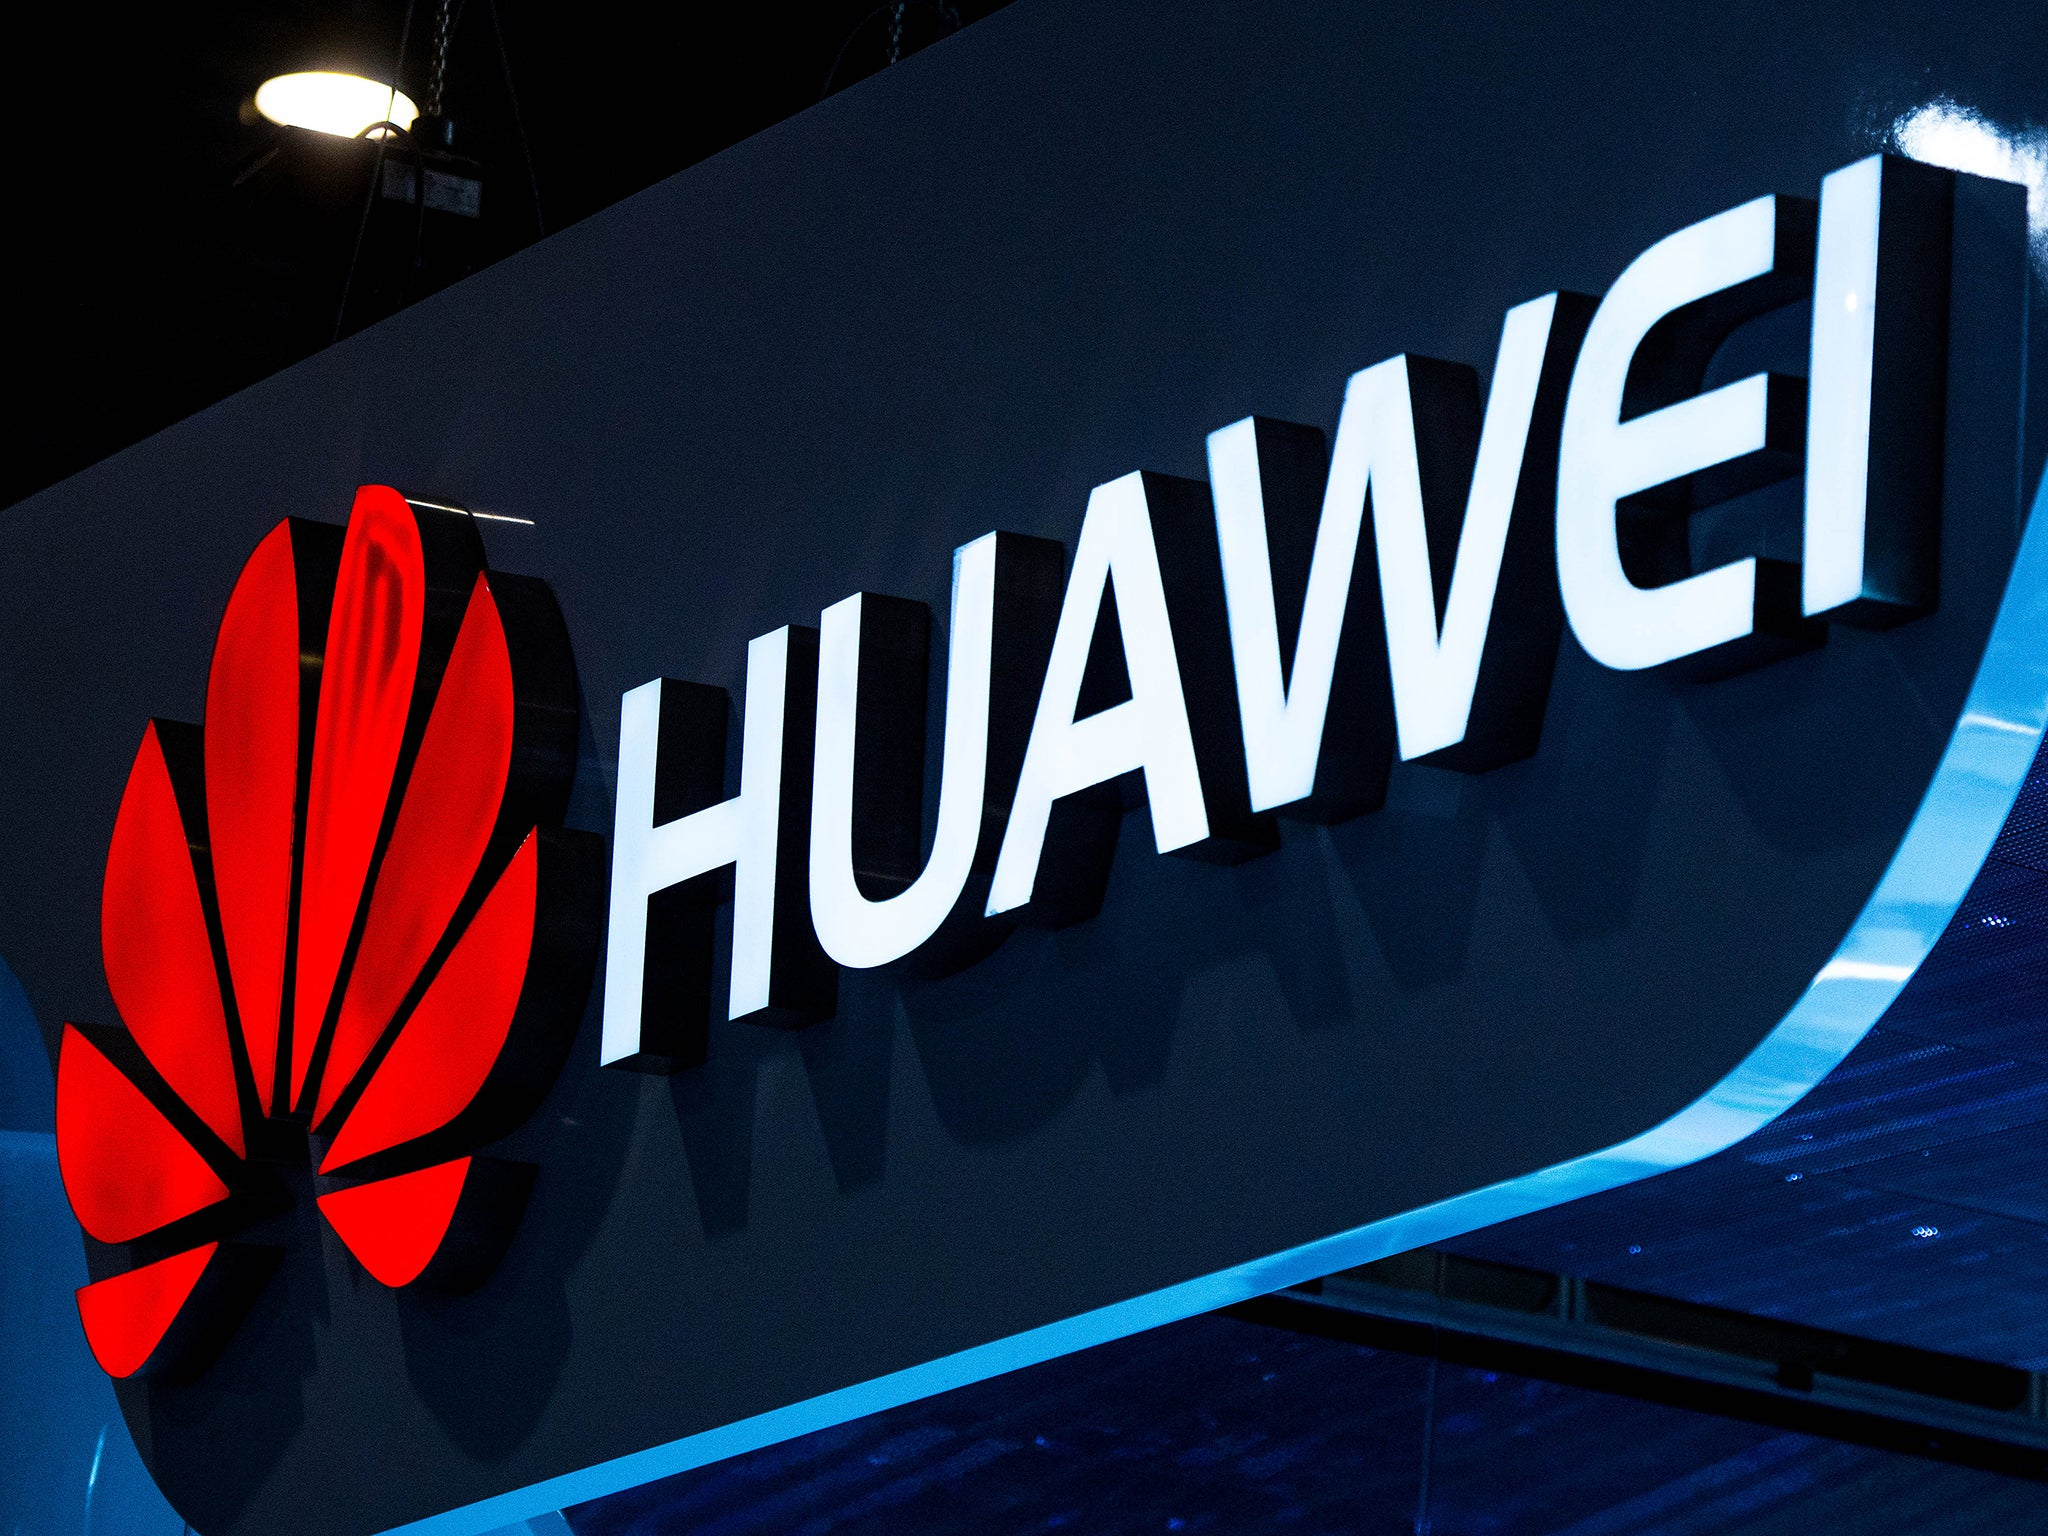 Huawei: Why are western governments worried about China's